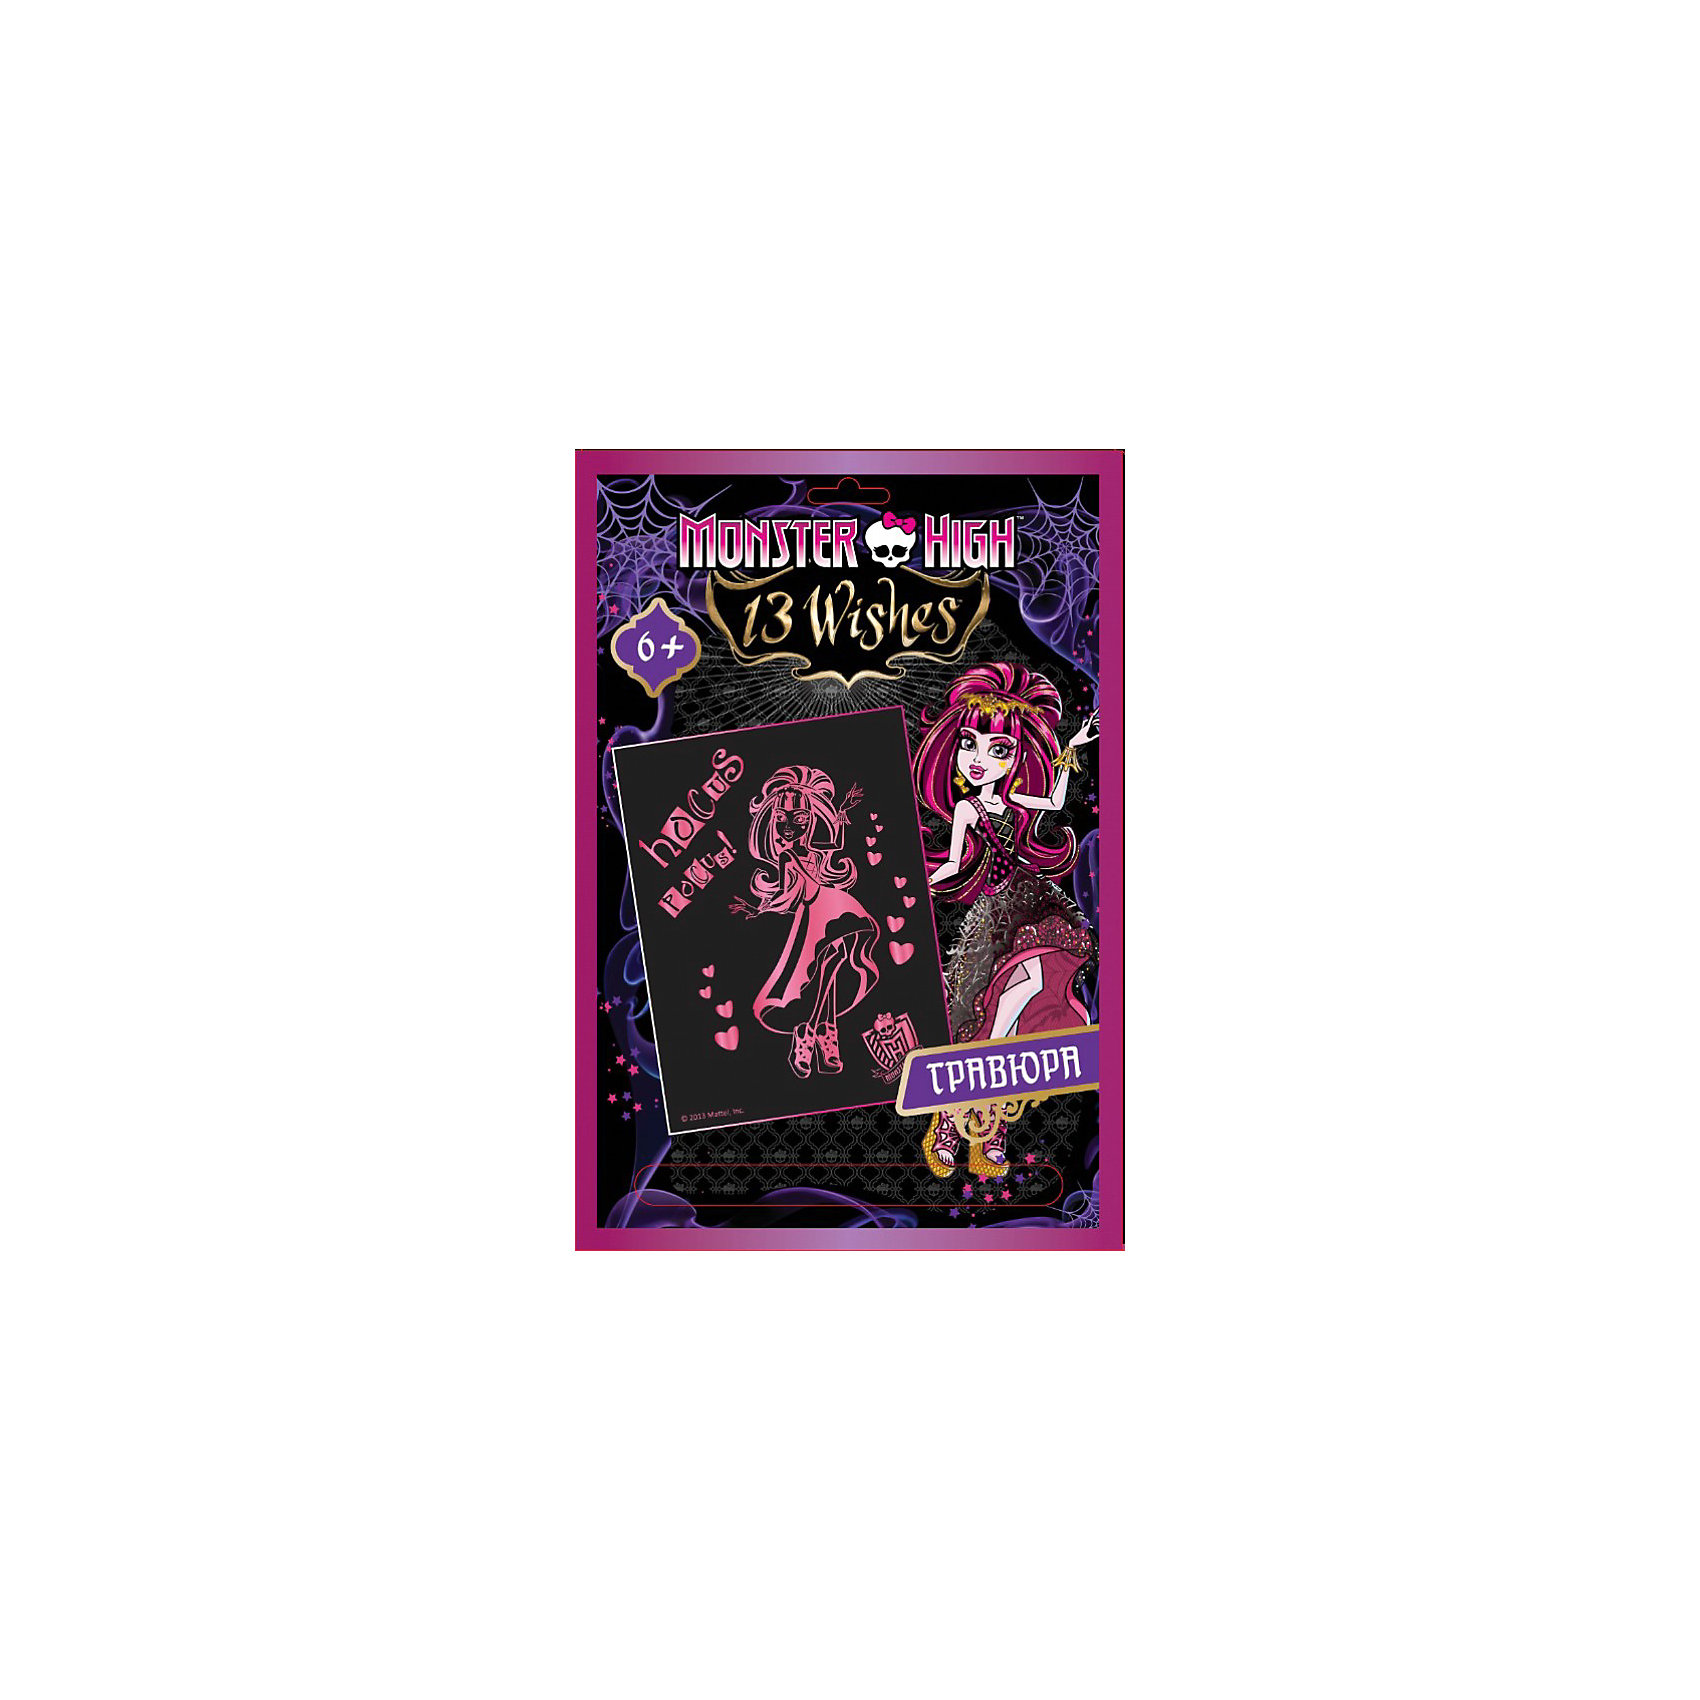 Гравюра Дракула, Monster High, CENTRUM